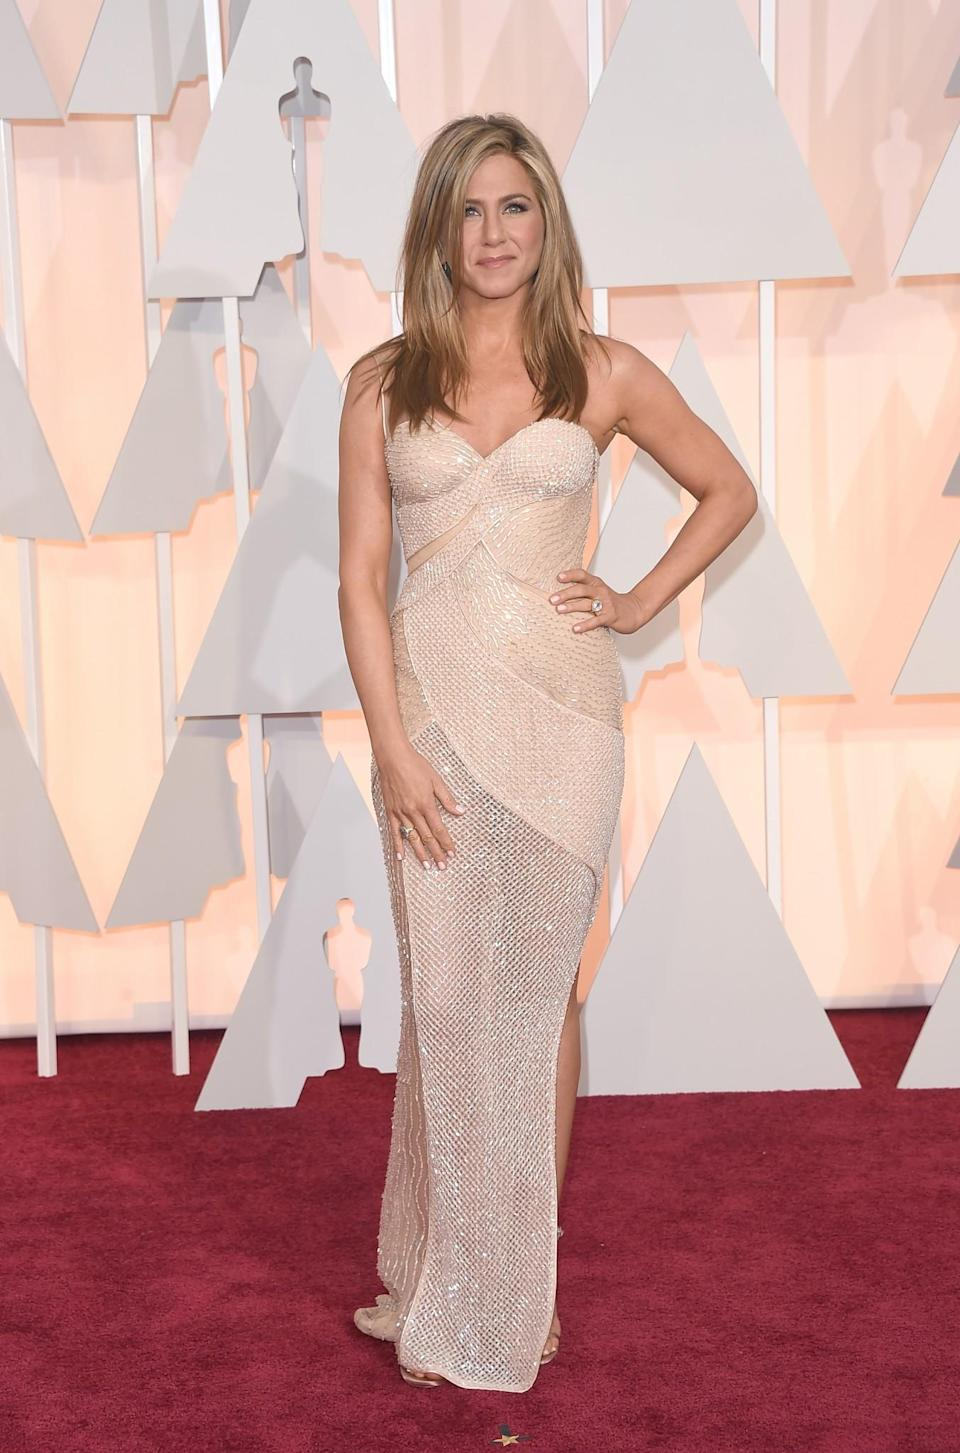 <p>The actress wowed in a nude beaded gown by Atelier Versace at the 2015 Oscars. <i>[Photo: Getty]</i> </p>